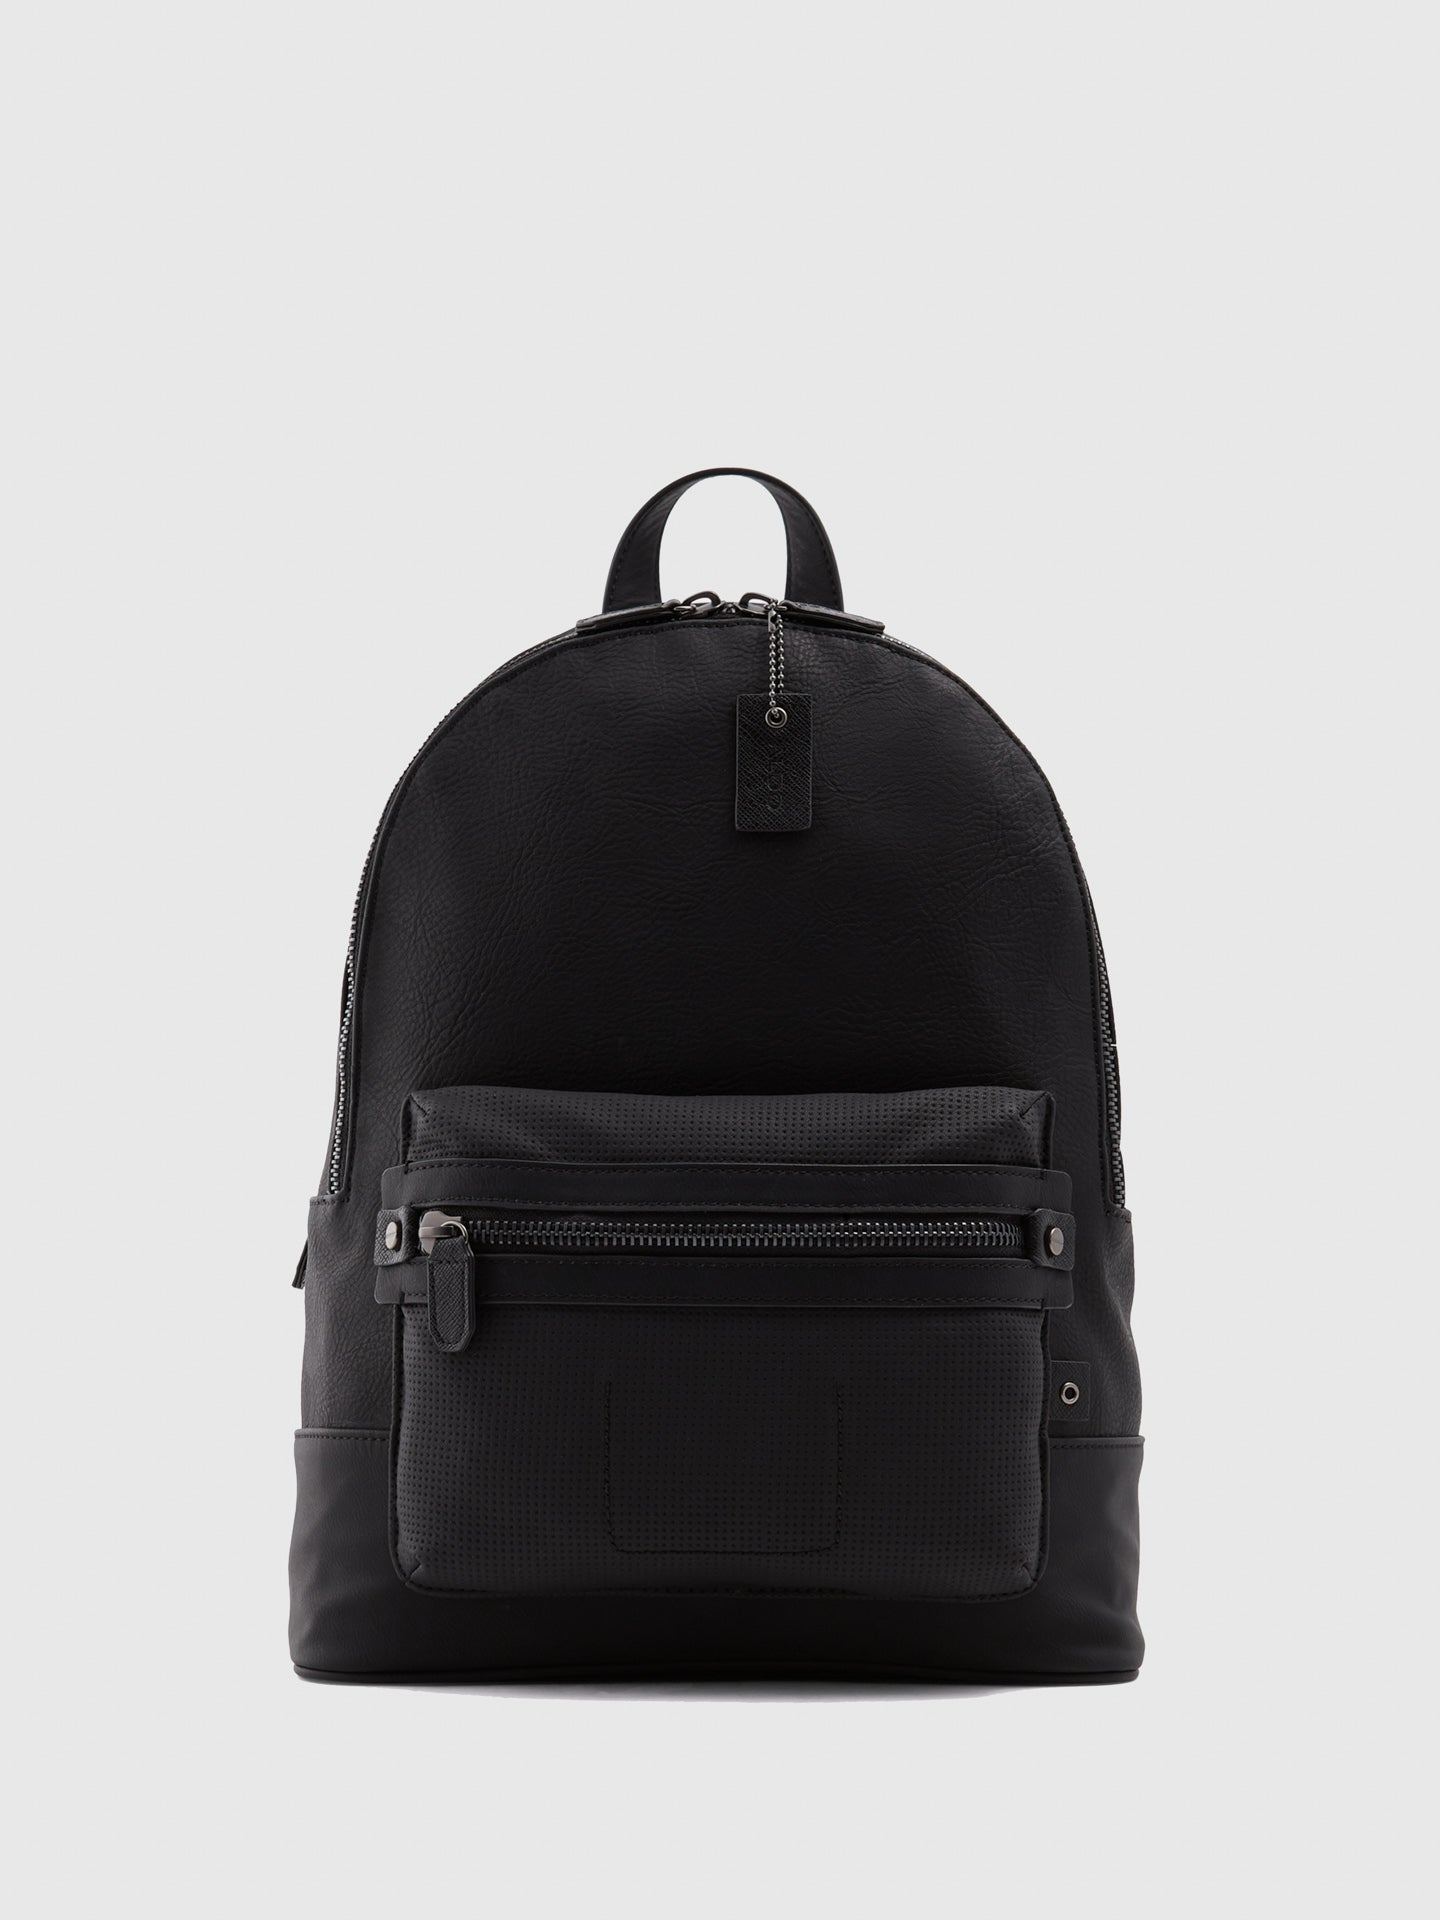 Aldo Black Leather Backpack